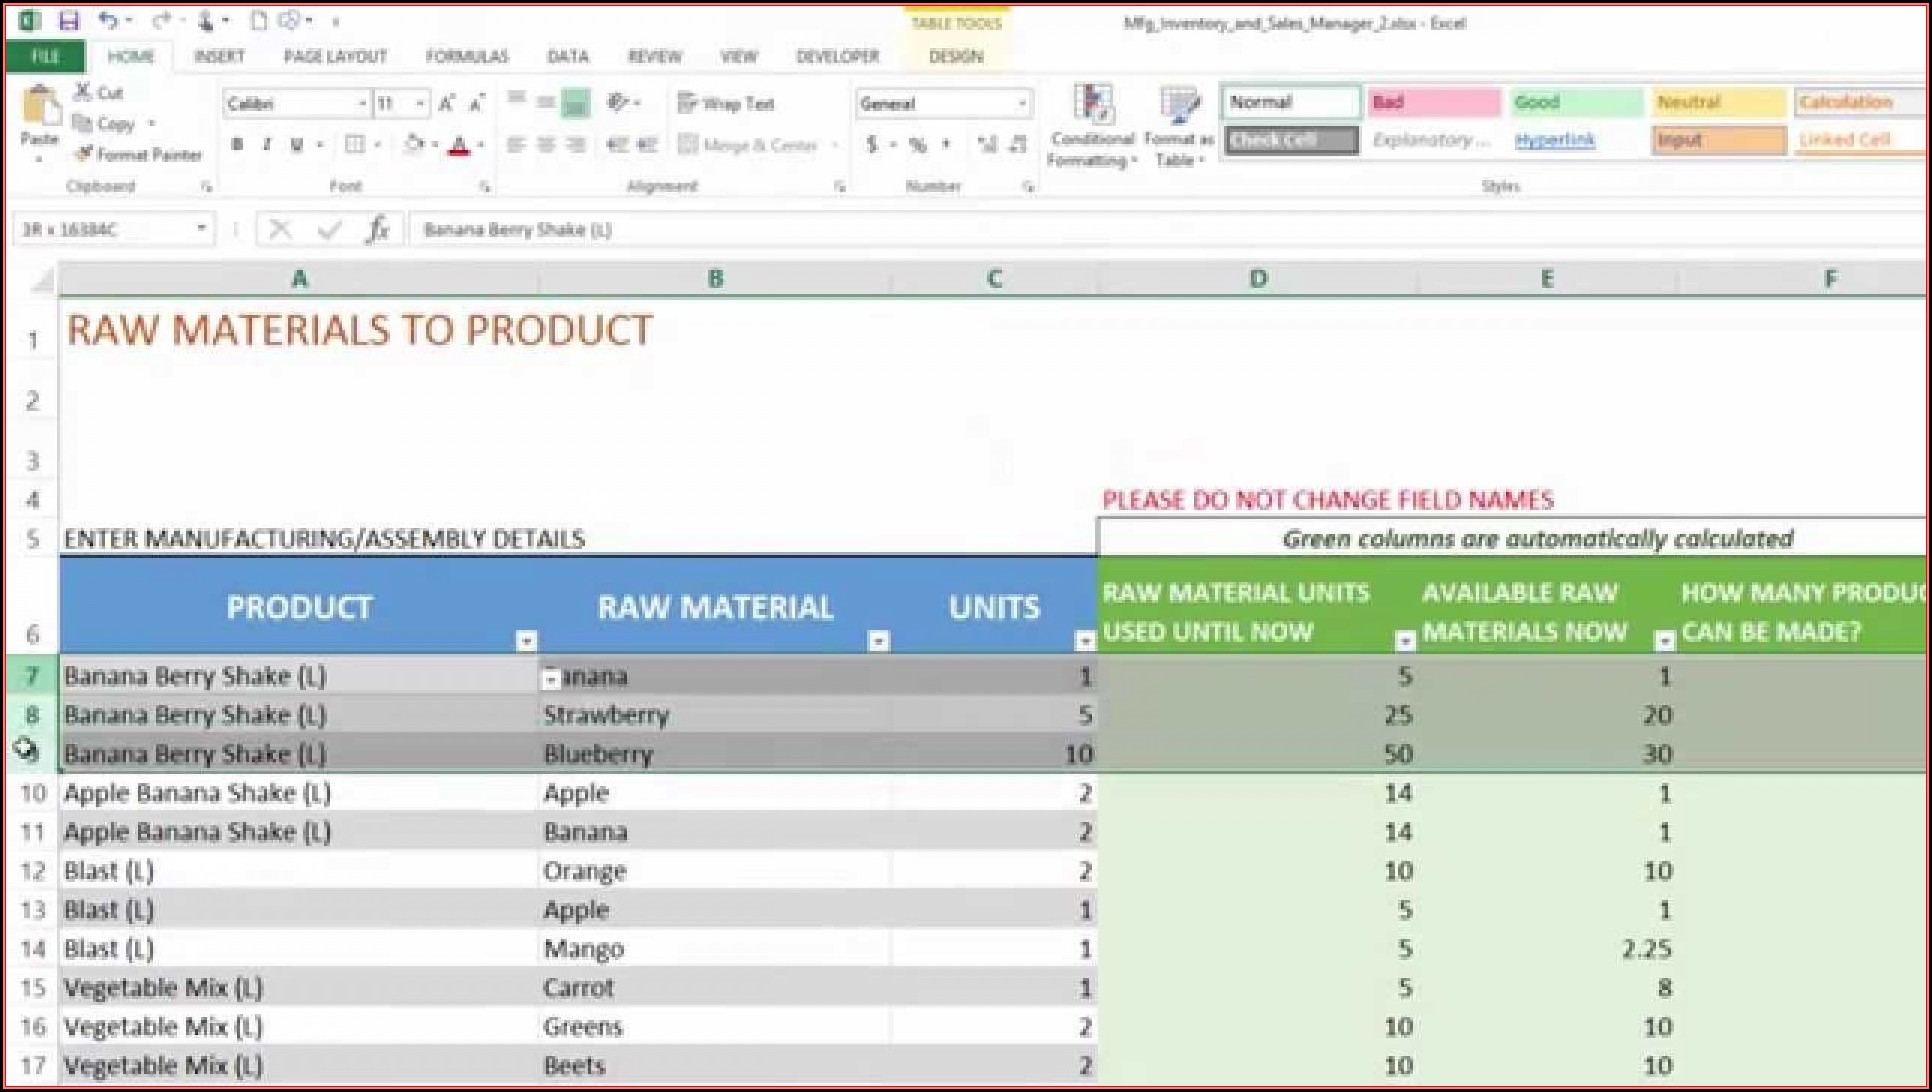 Excel 2007 Inventory Management Template